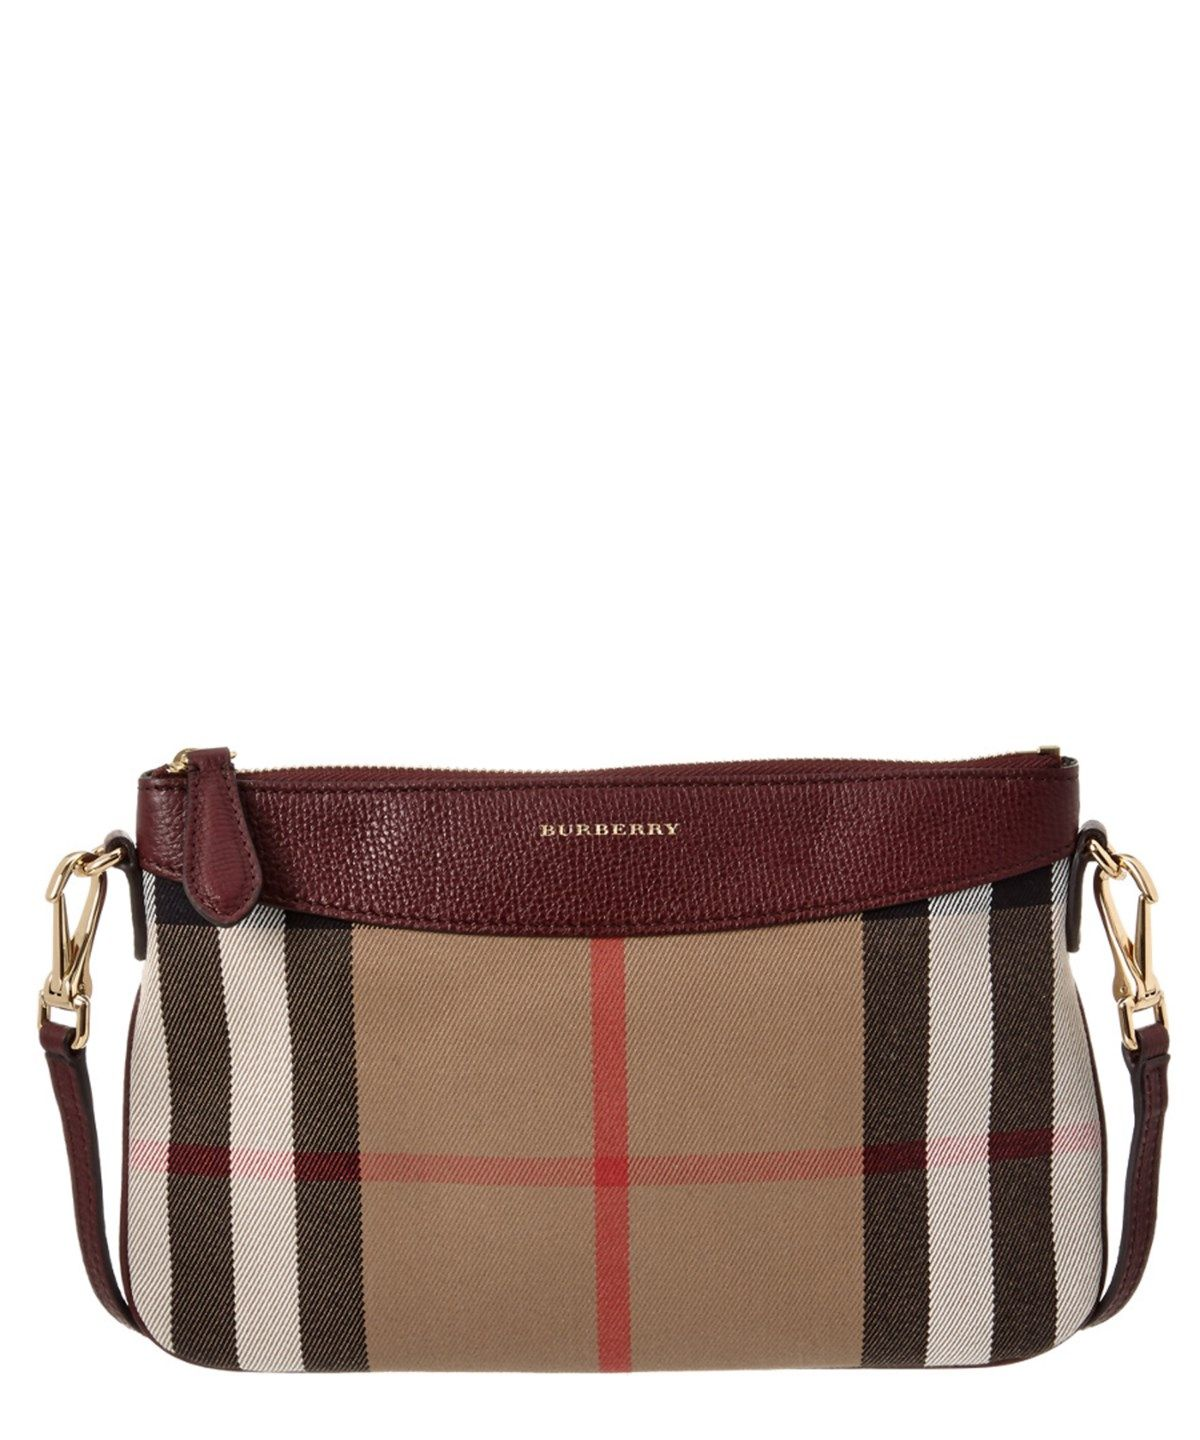 2d09608e6e4f BURBERRY BURBERRY PEYTON HORSEFERRY CHECK AND LEATHER CLUTCH BAG .  burberry   bags  canvas  leather  clutch  shoulder bags  lining  hand bags